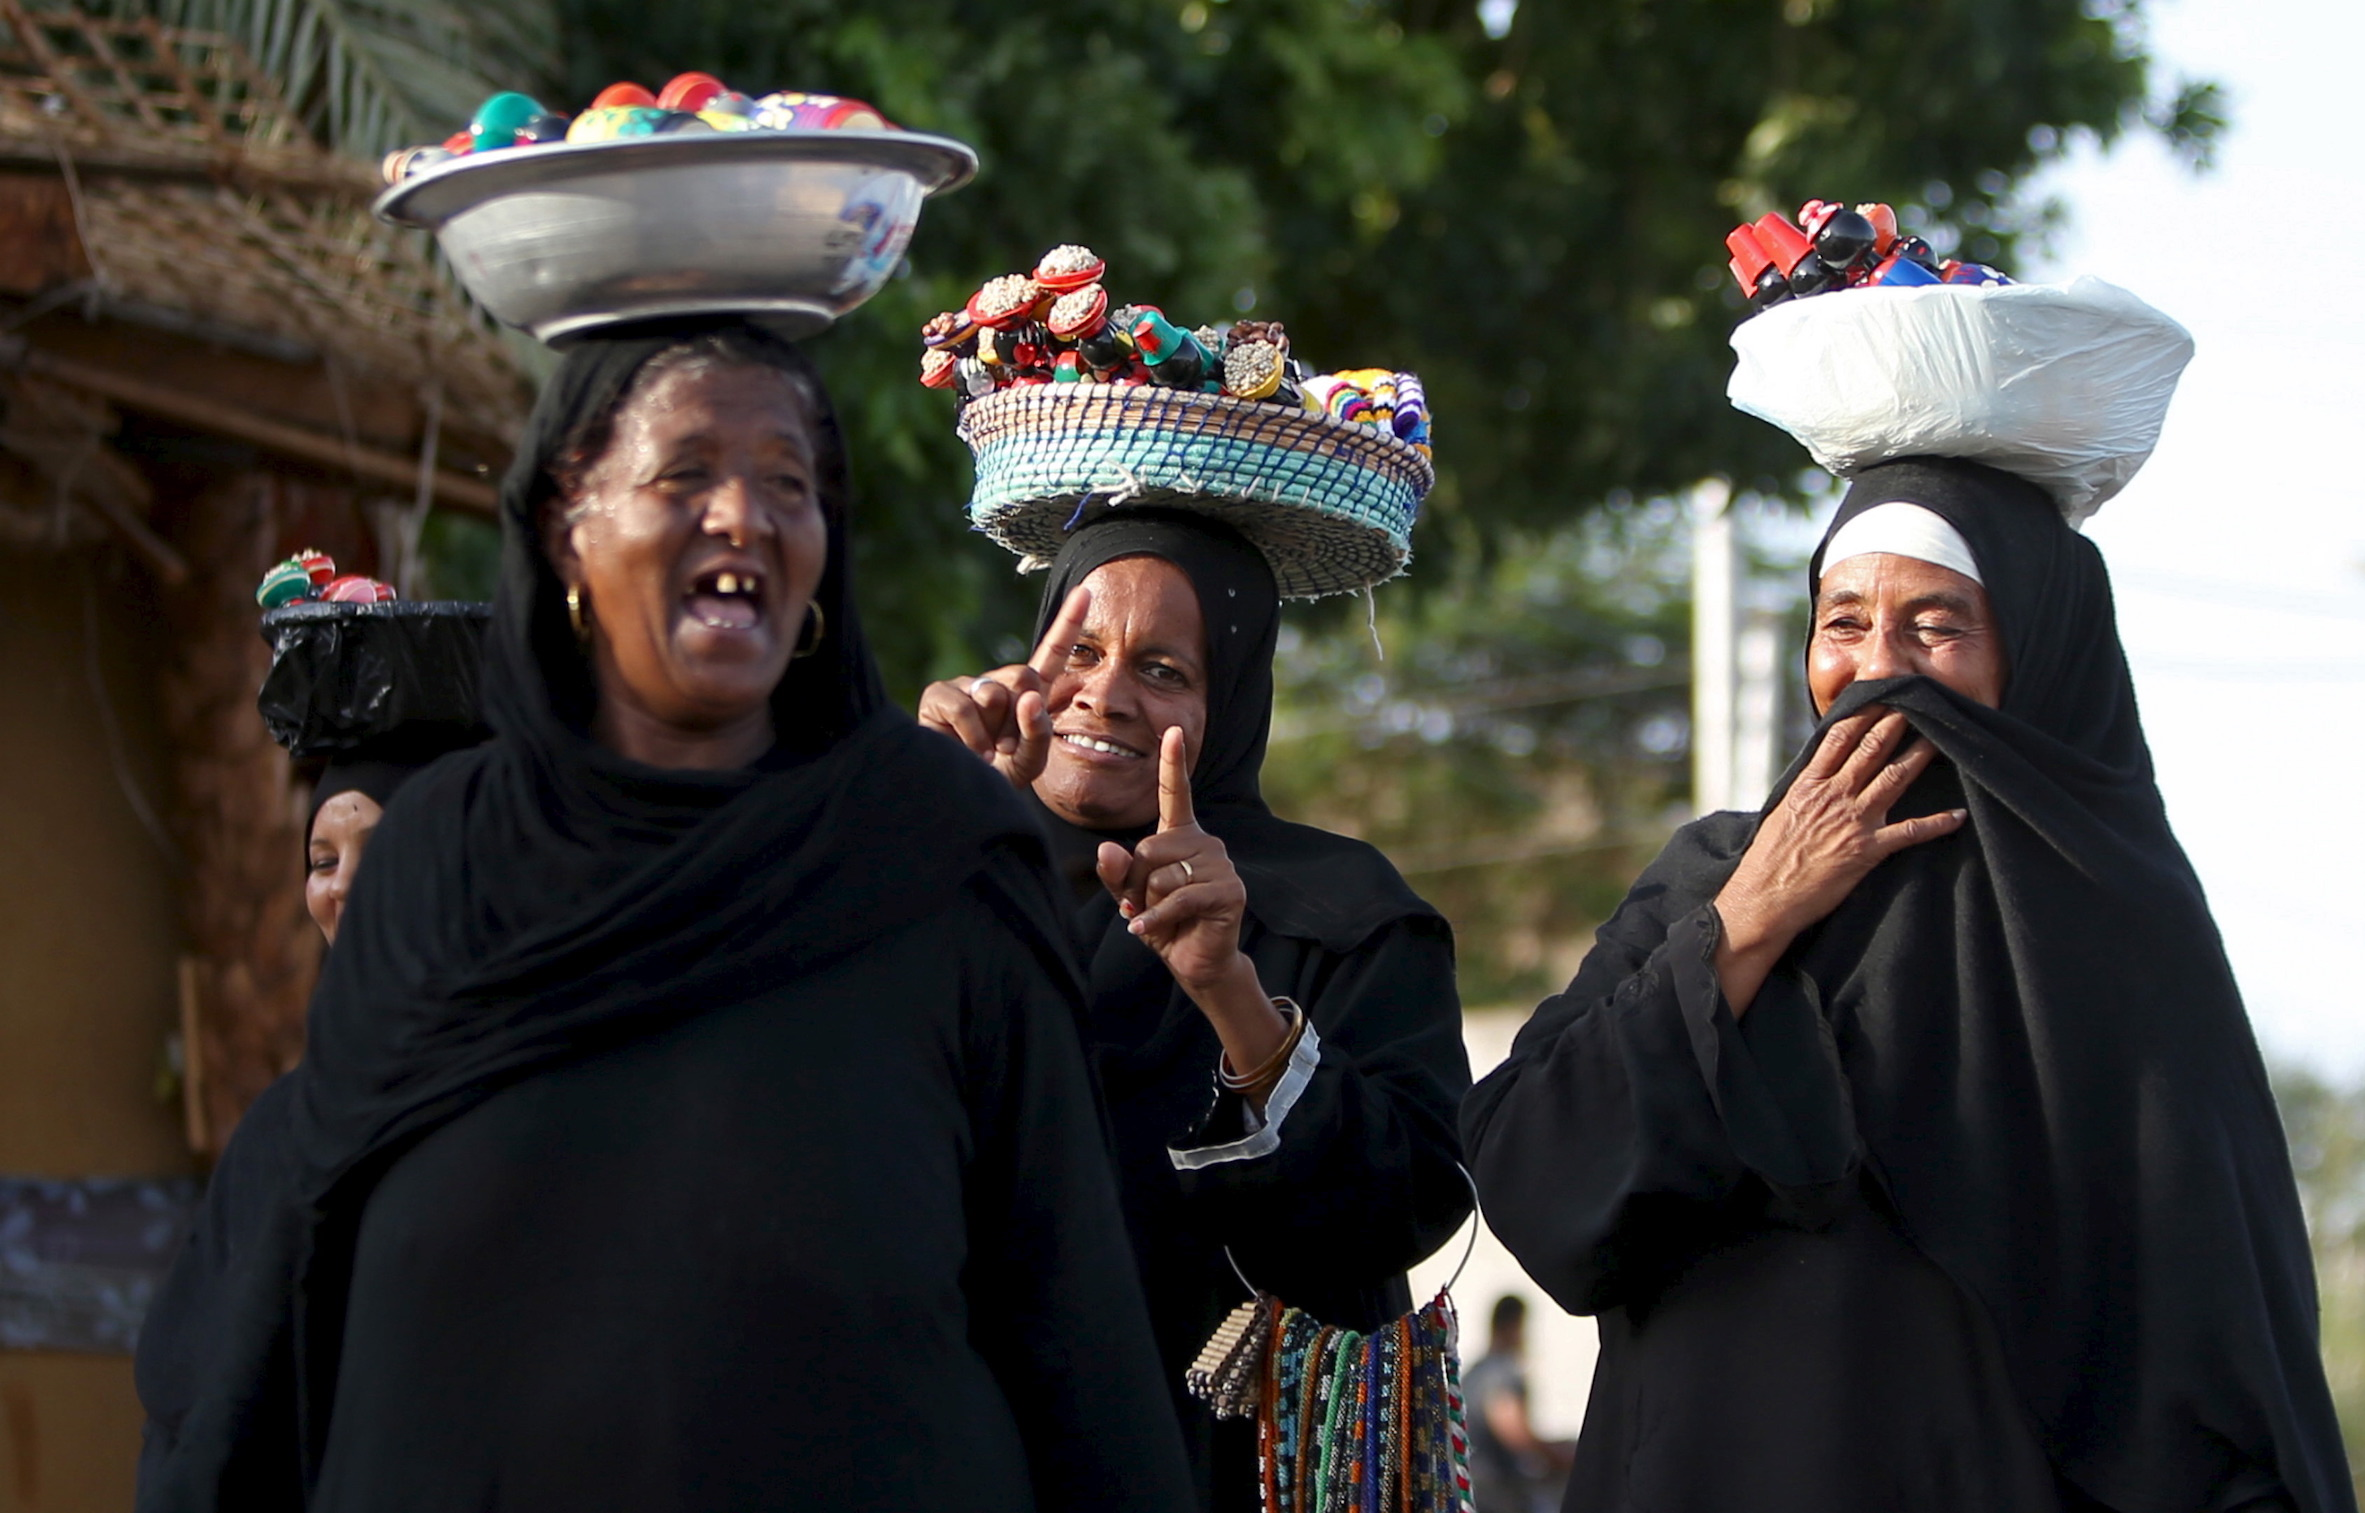 Nubian women sell traditional crafts at the Nubian Gharb Suheil village, near Aswan.